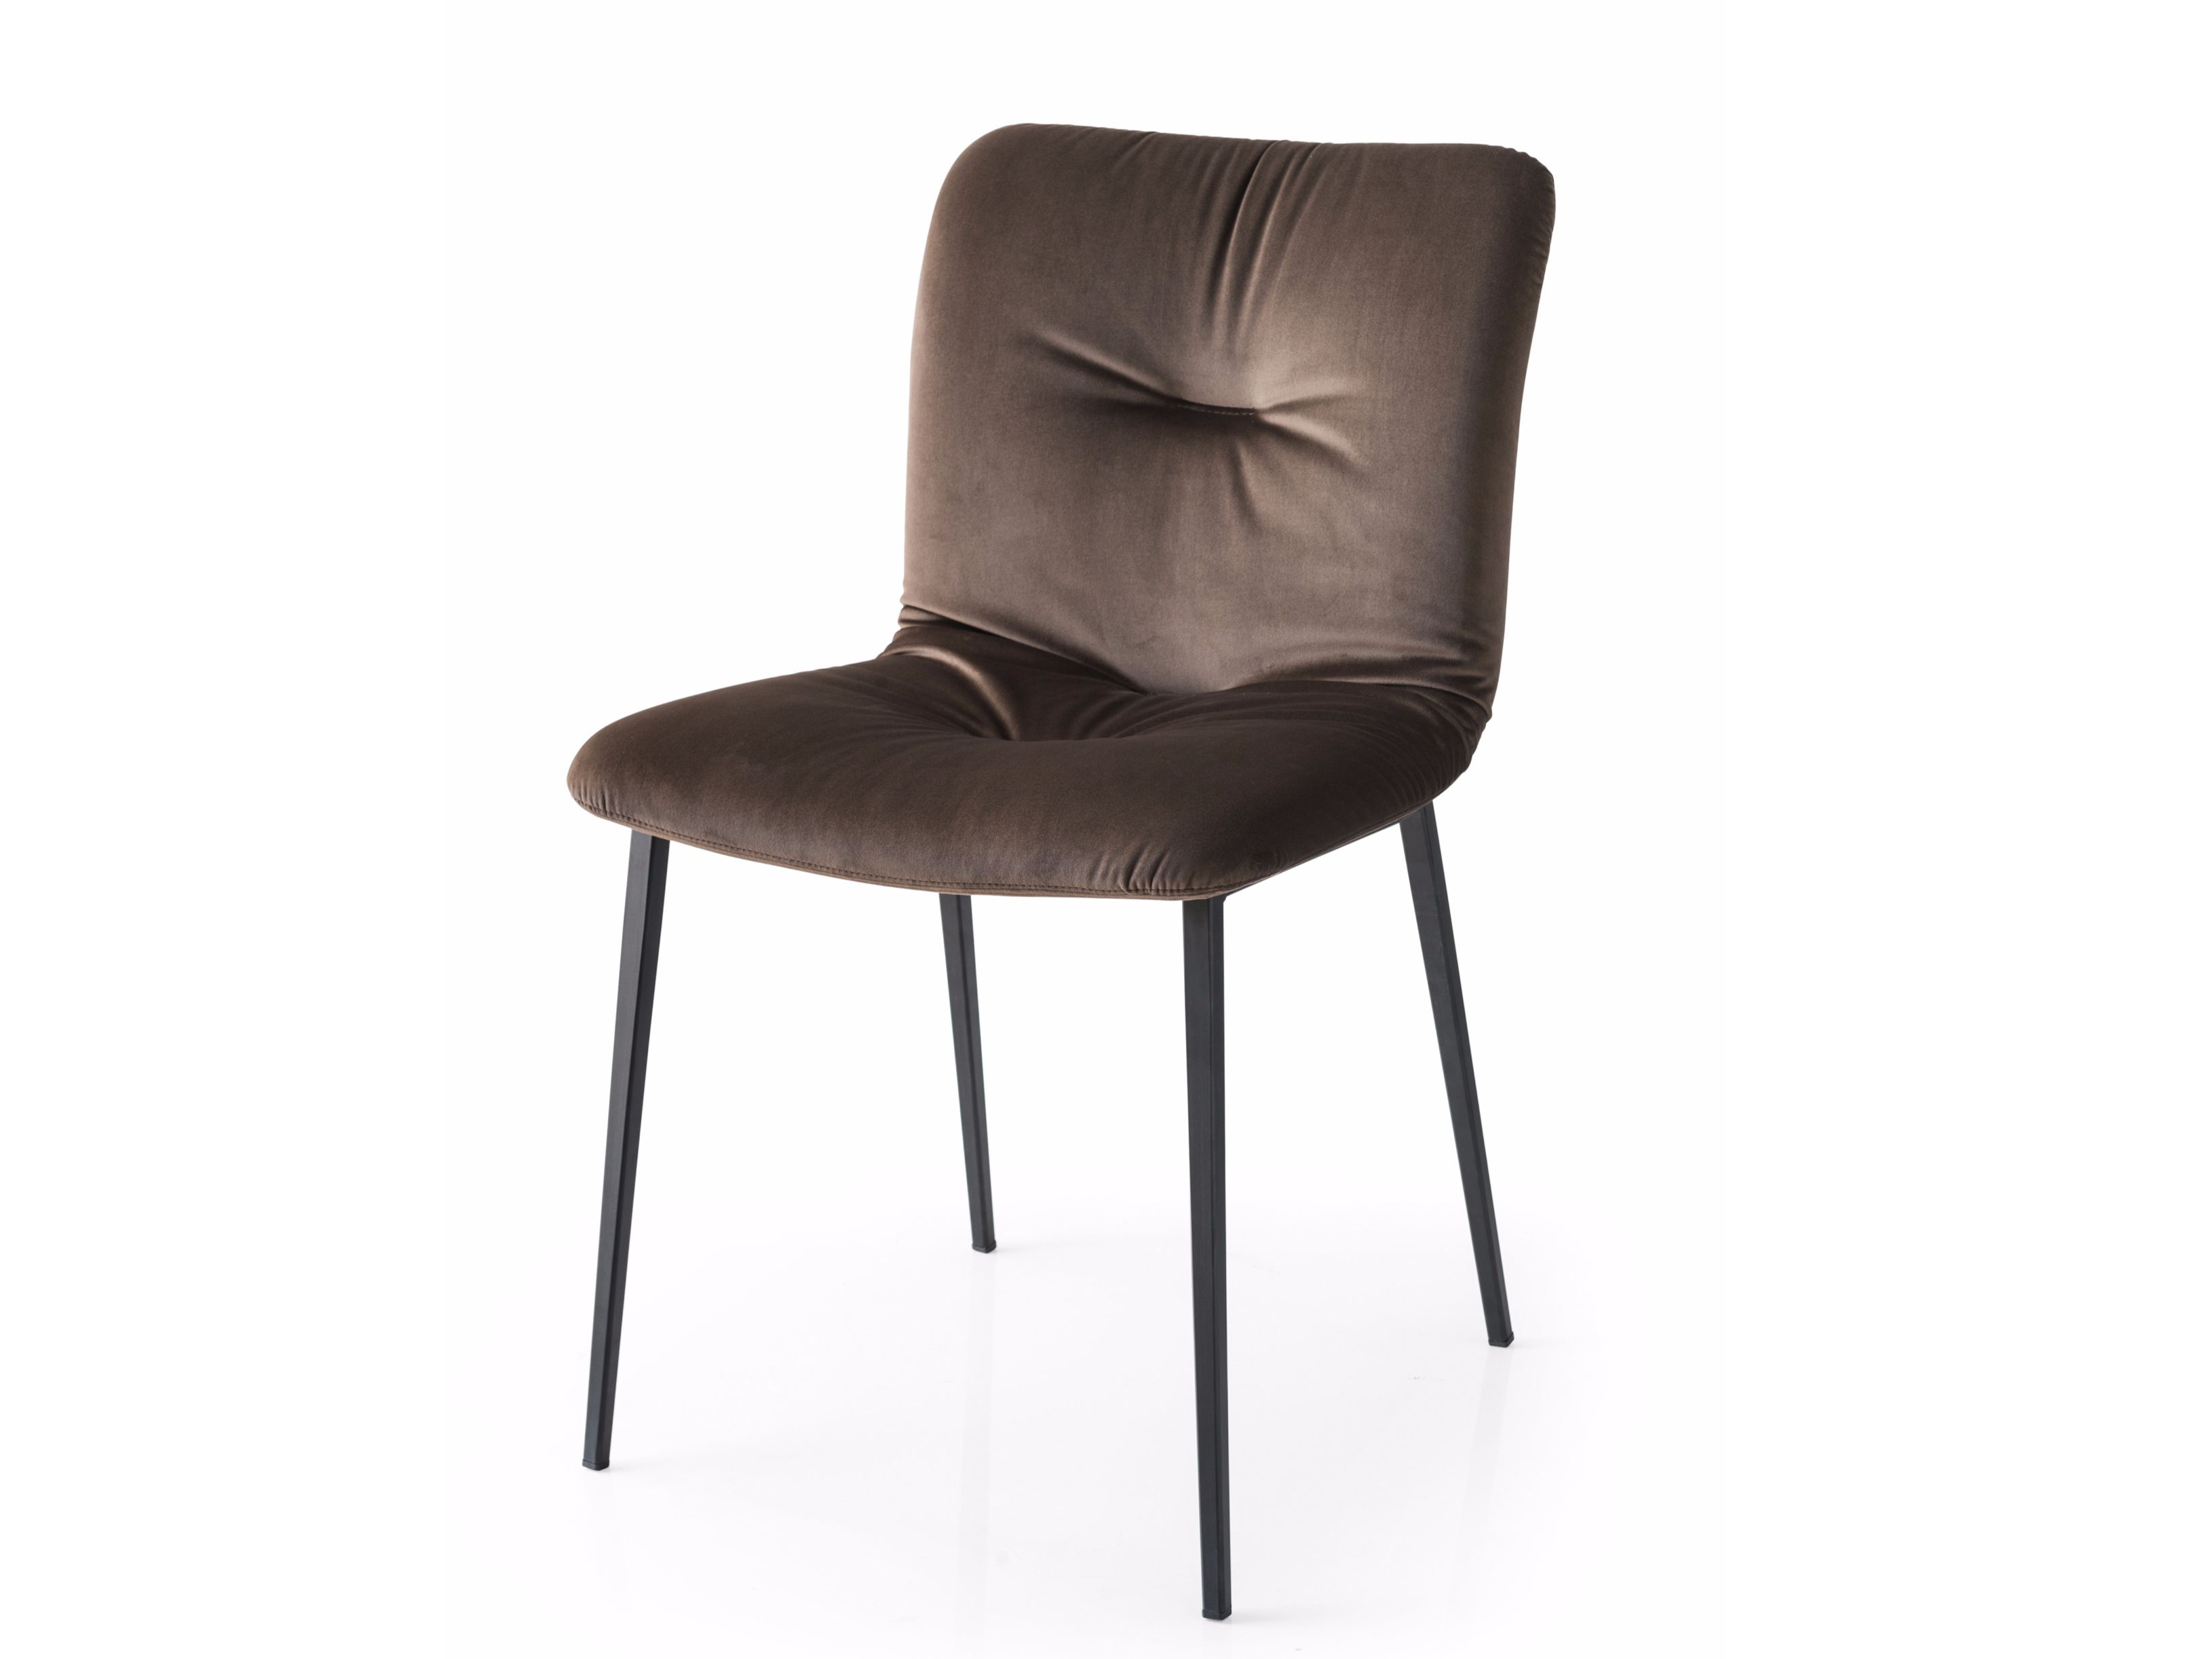 Upholstered Fabric Chair Annie Soft By Calligaris Design Edi E